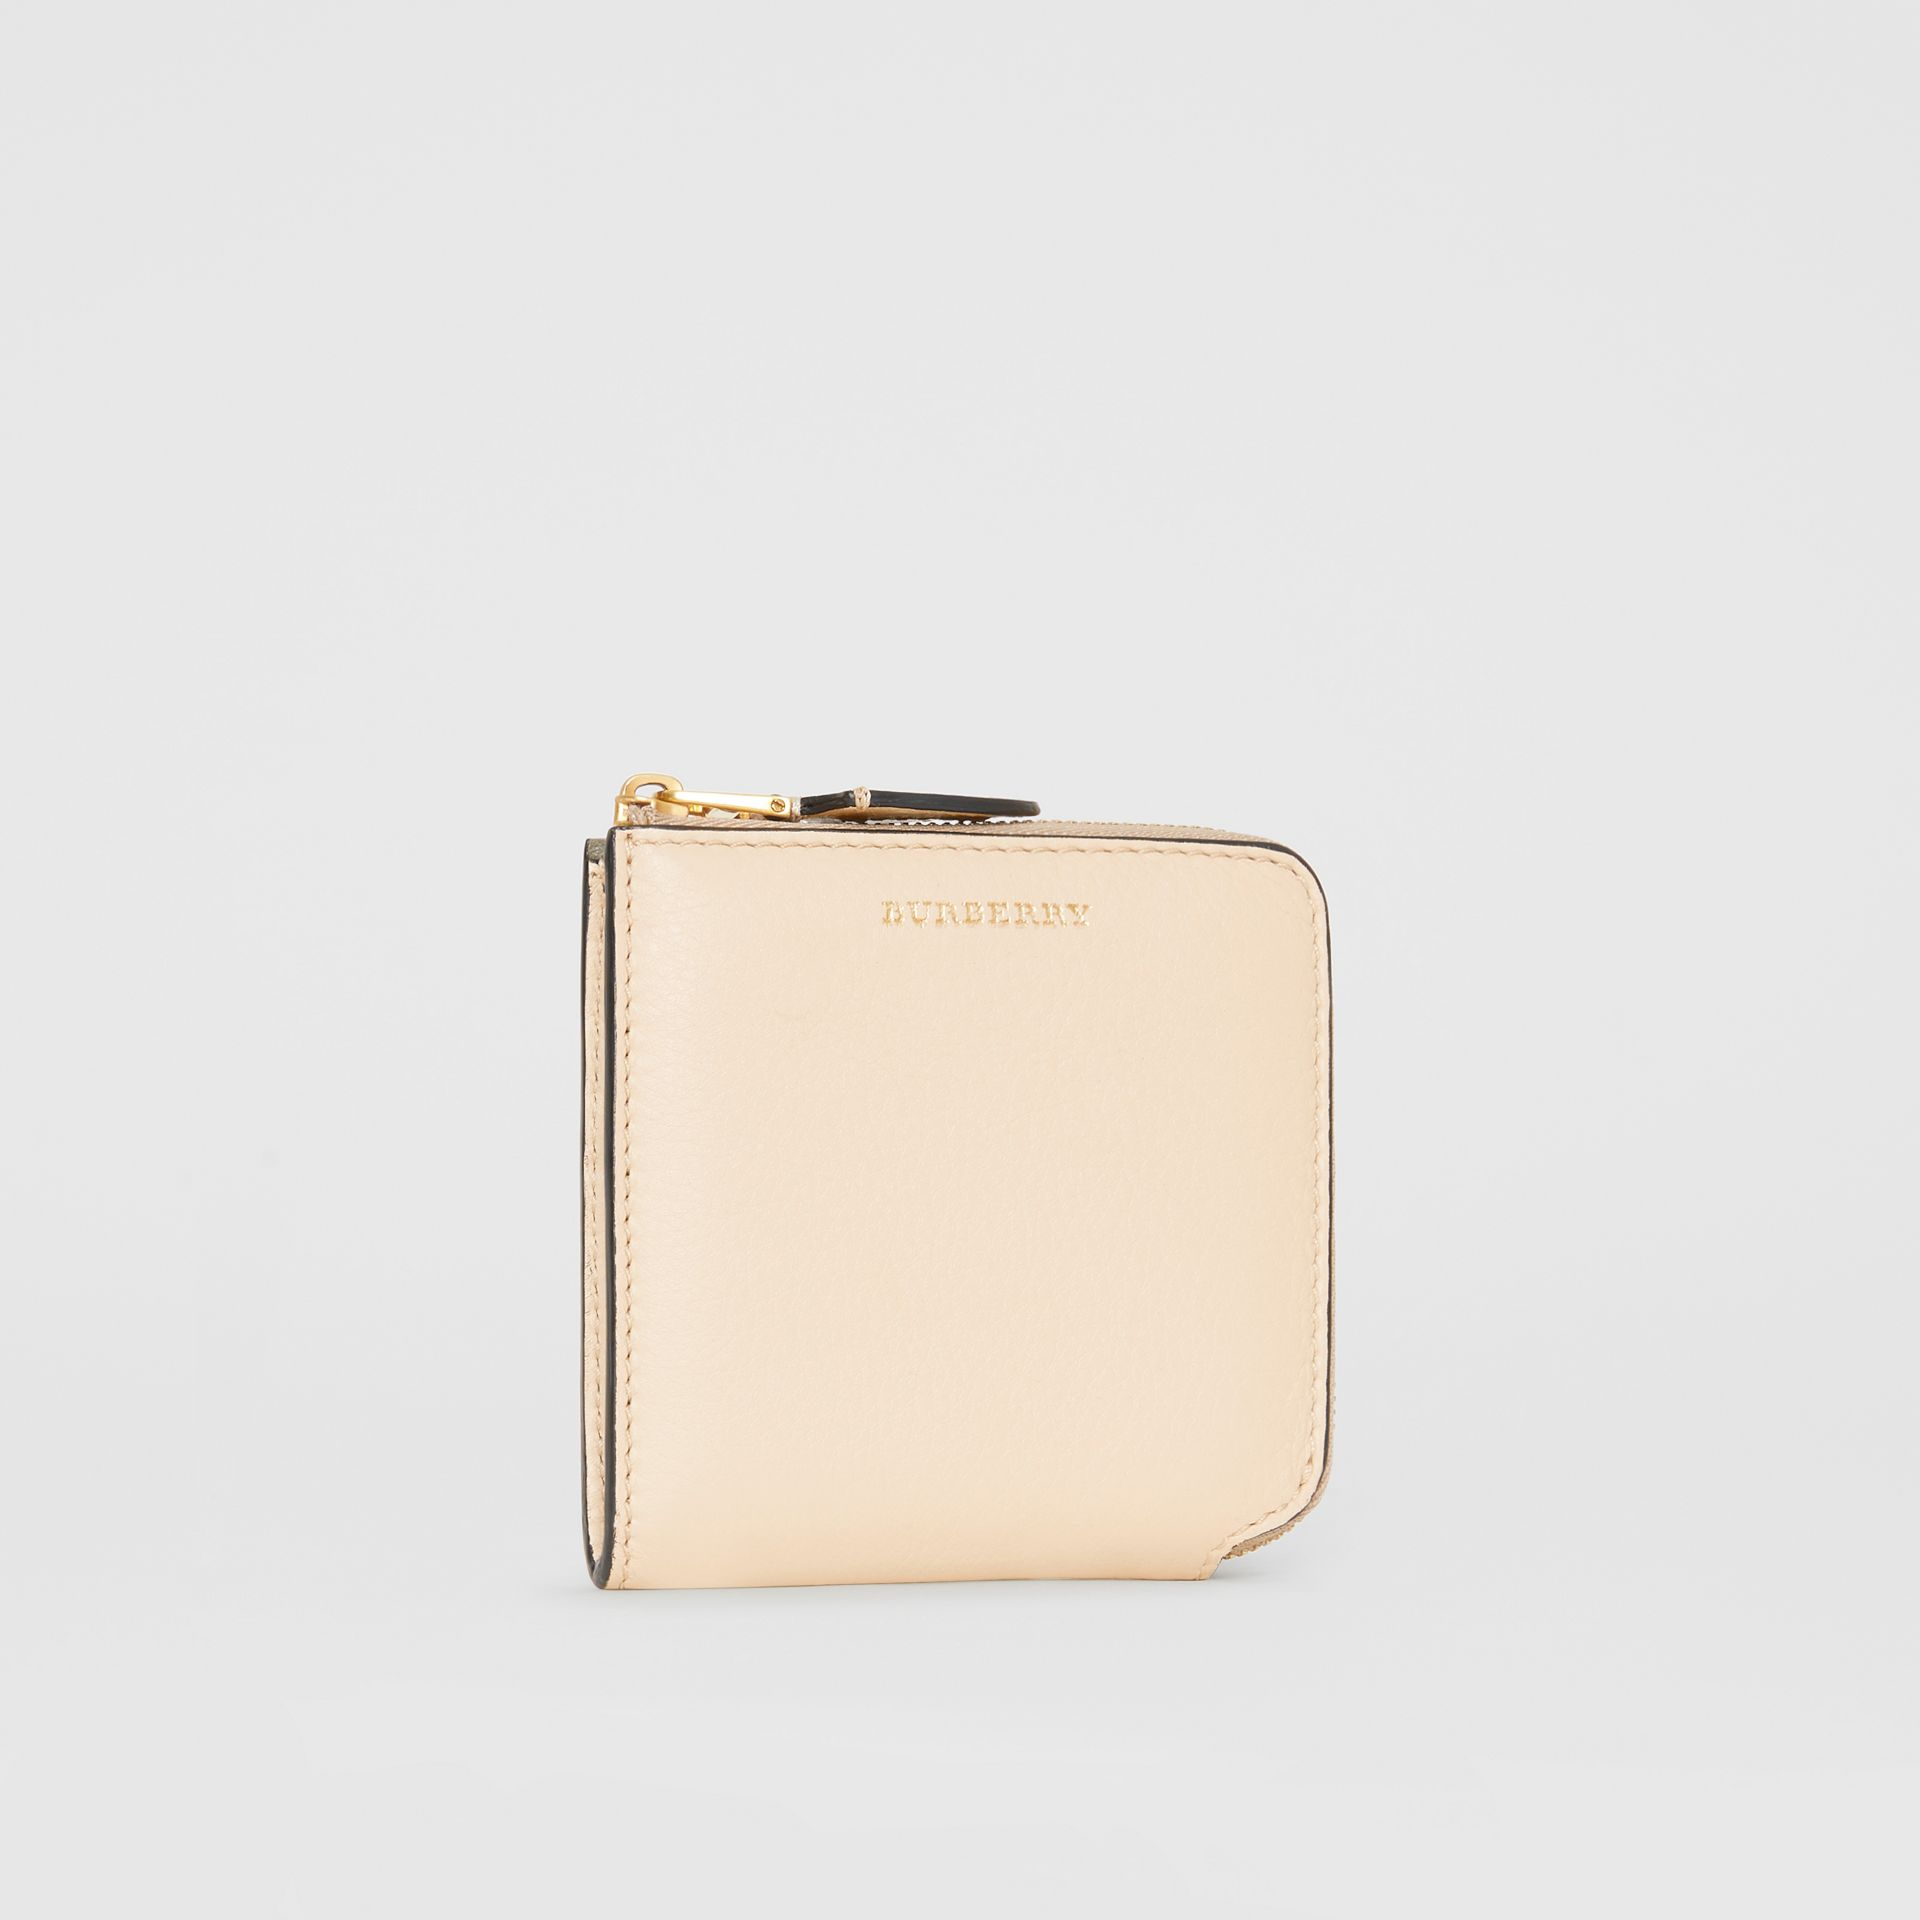 Grainy Leather Square Ziparound Wallet in Limestone - Women | Burberry Australia - gallery image 4